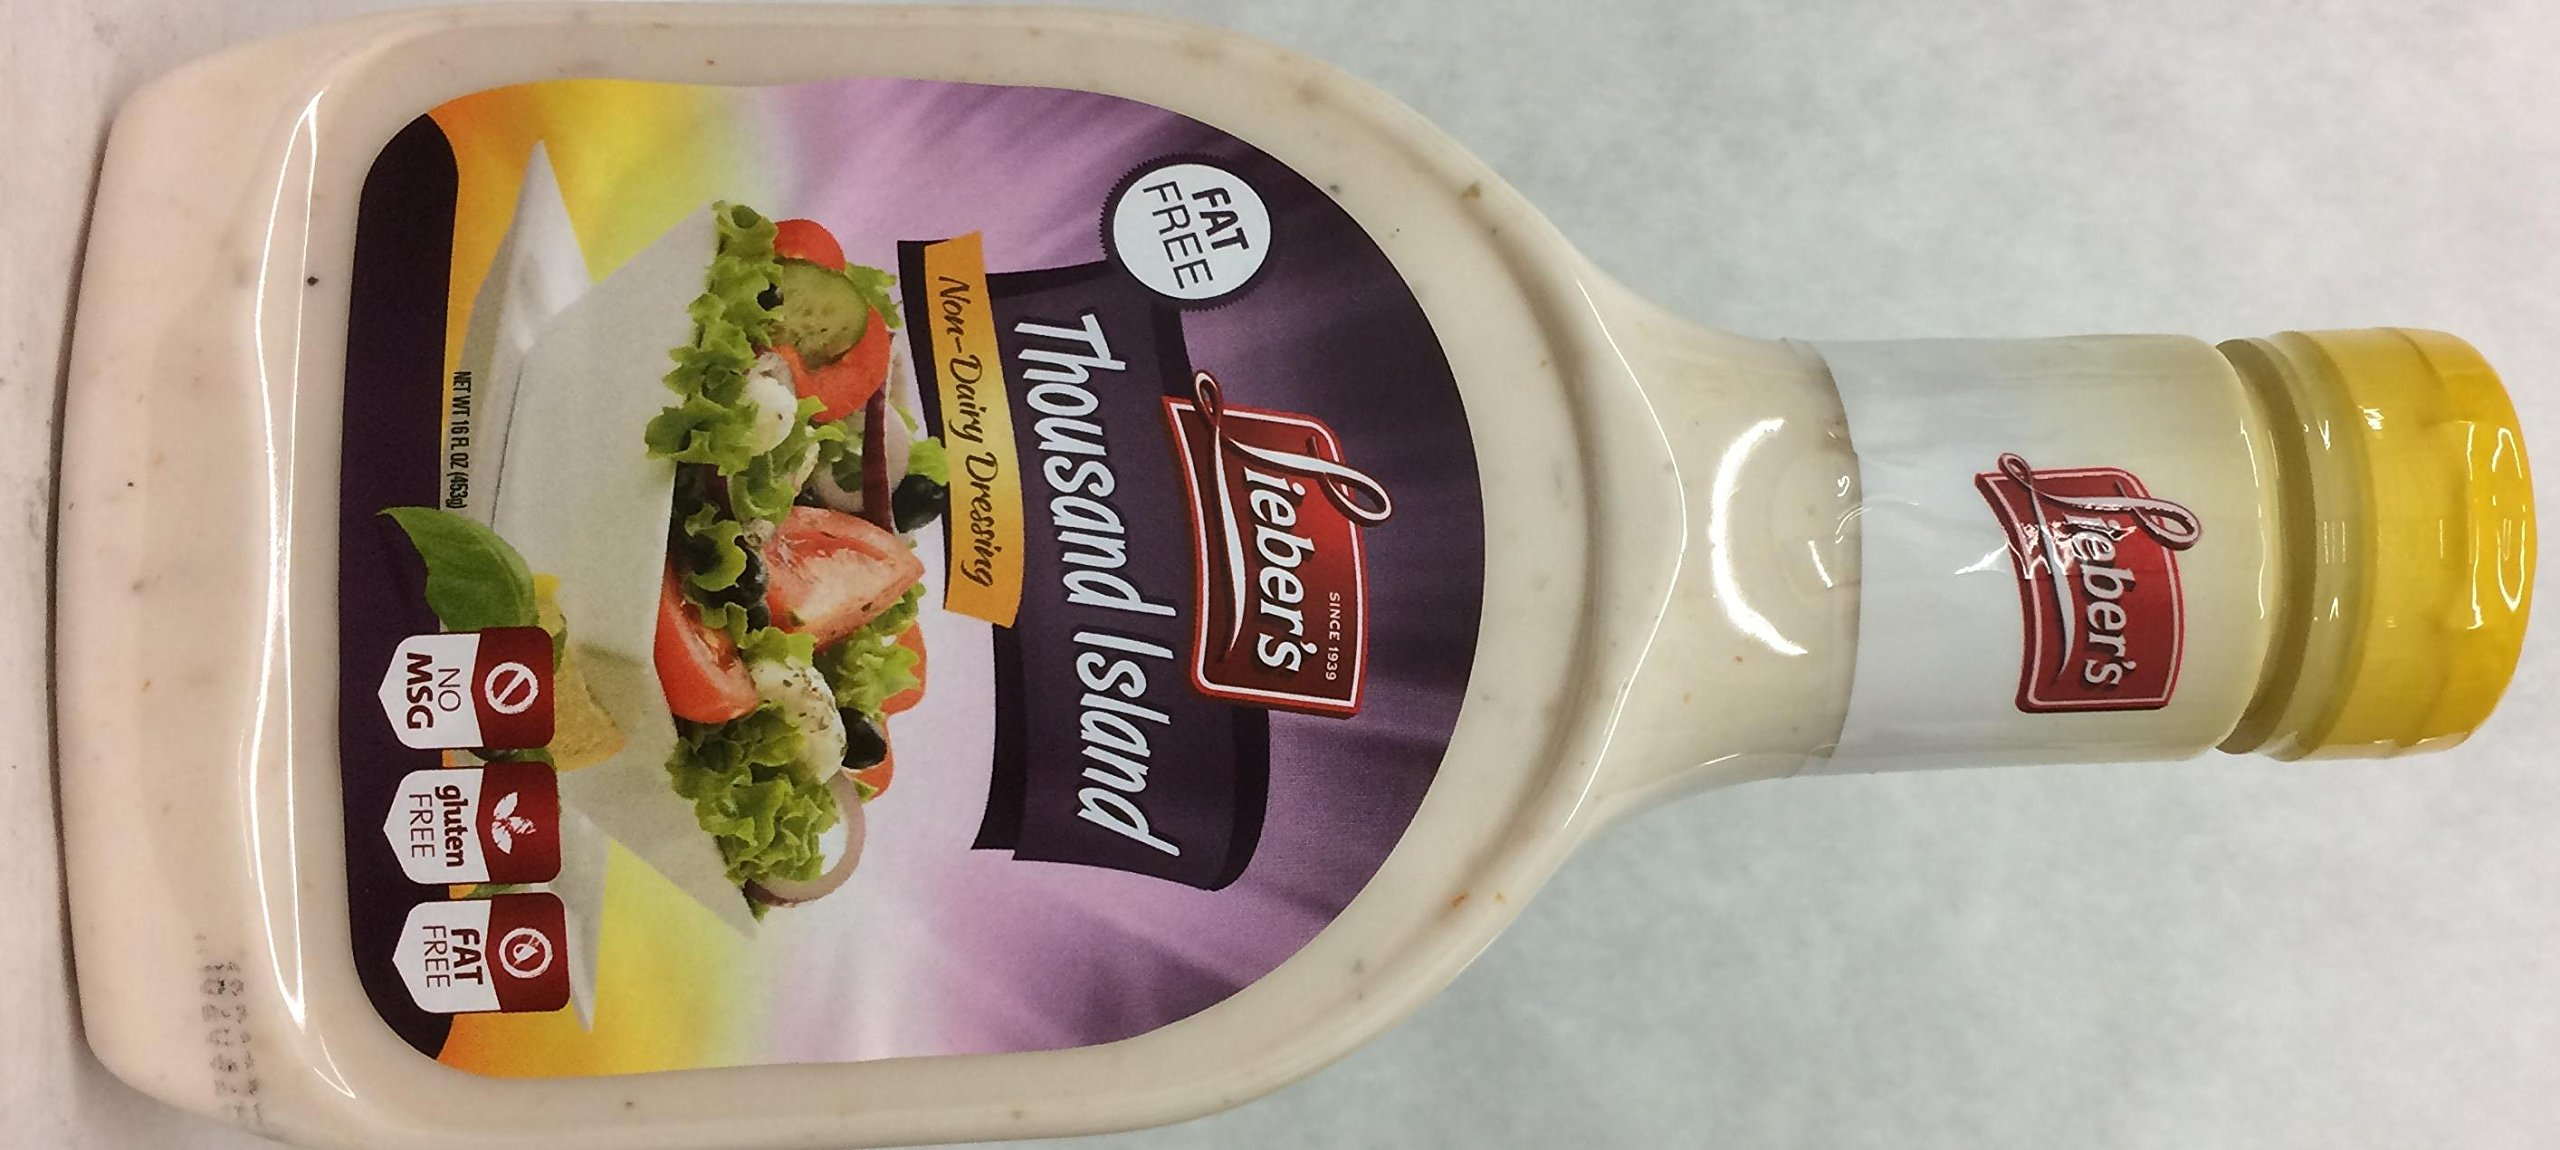 Lieber's Thousand Island Non-Dairy Dressing Kosher For Passover 16 Oz. Pack Of 6.